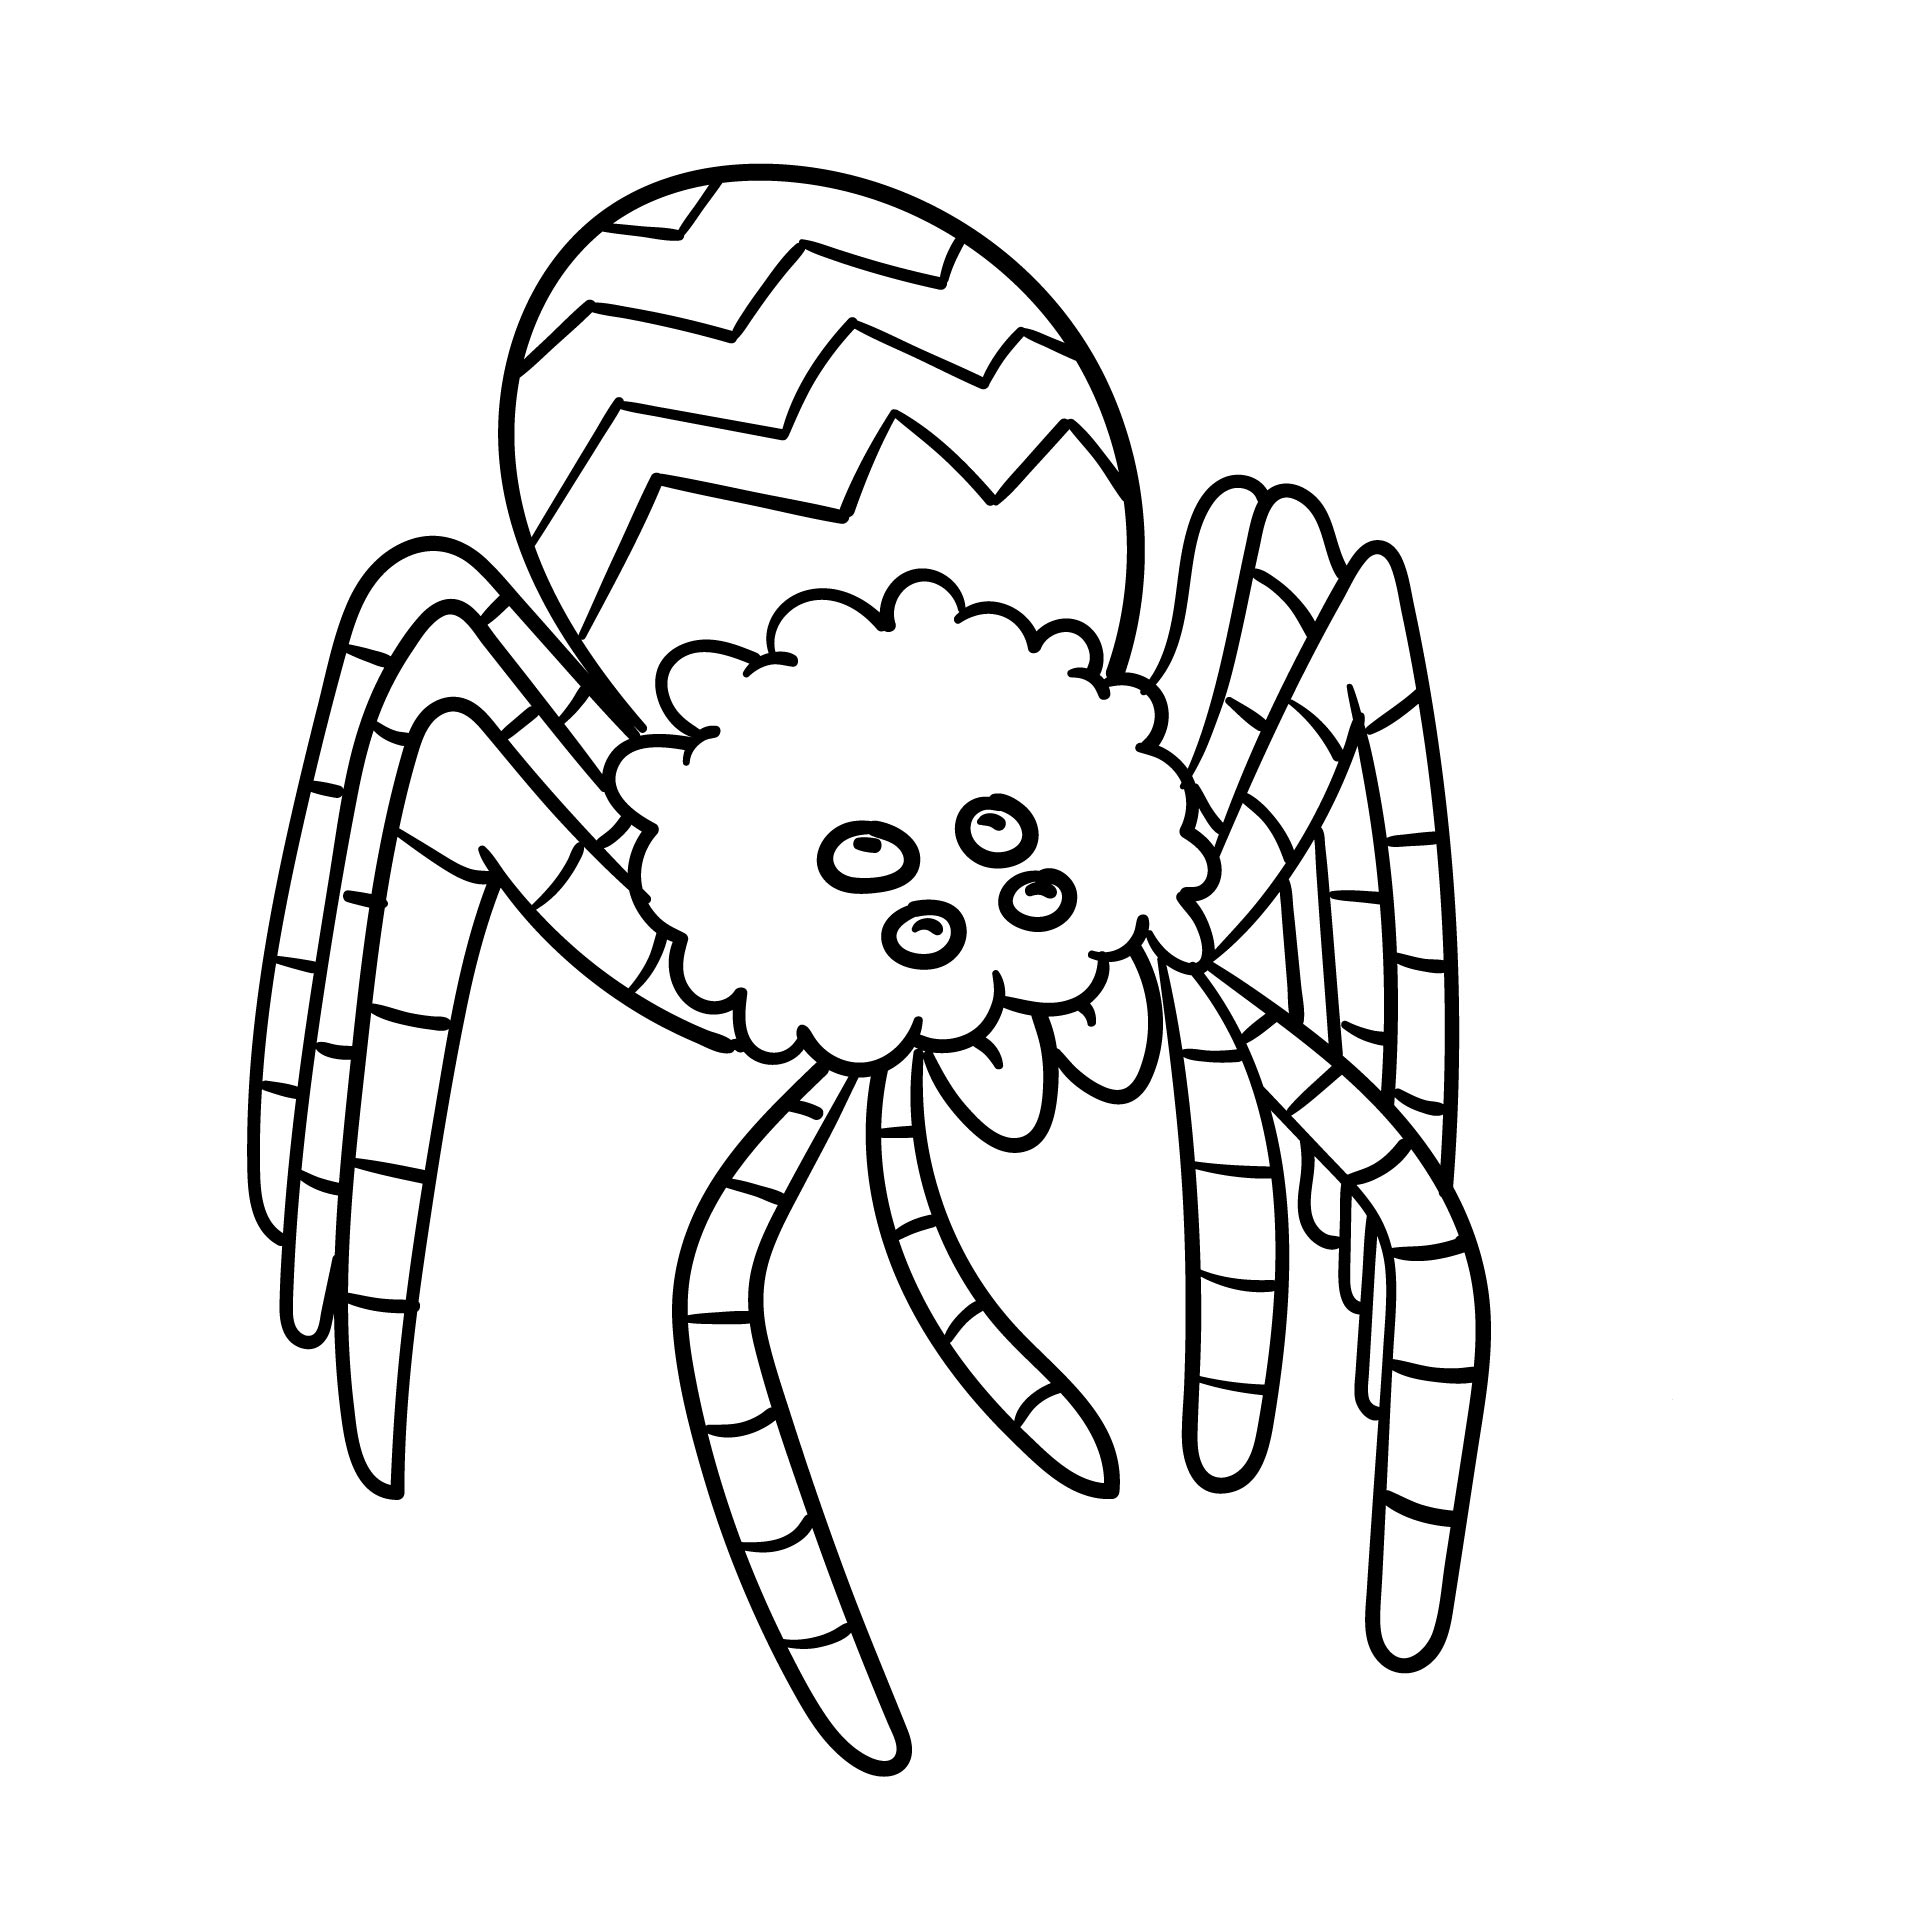 printable halloween spider coloring pages - photo#23